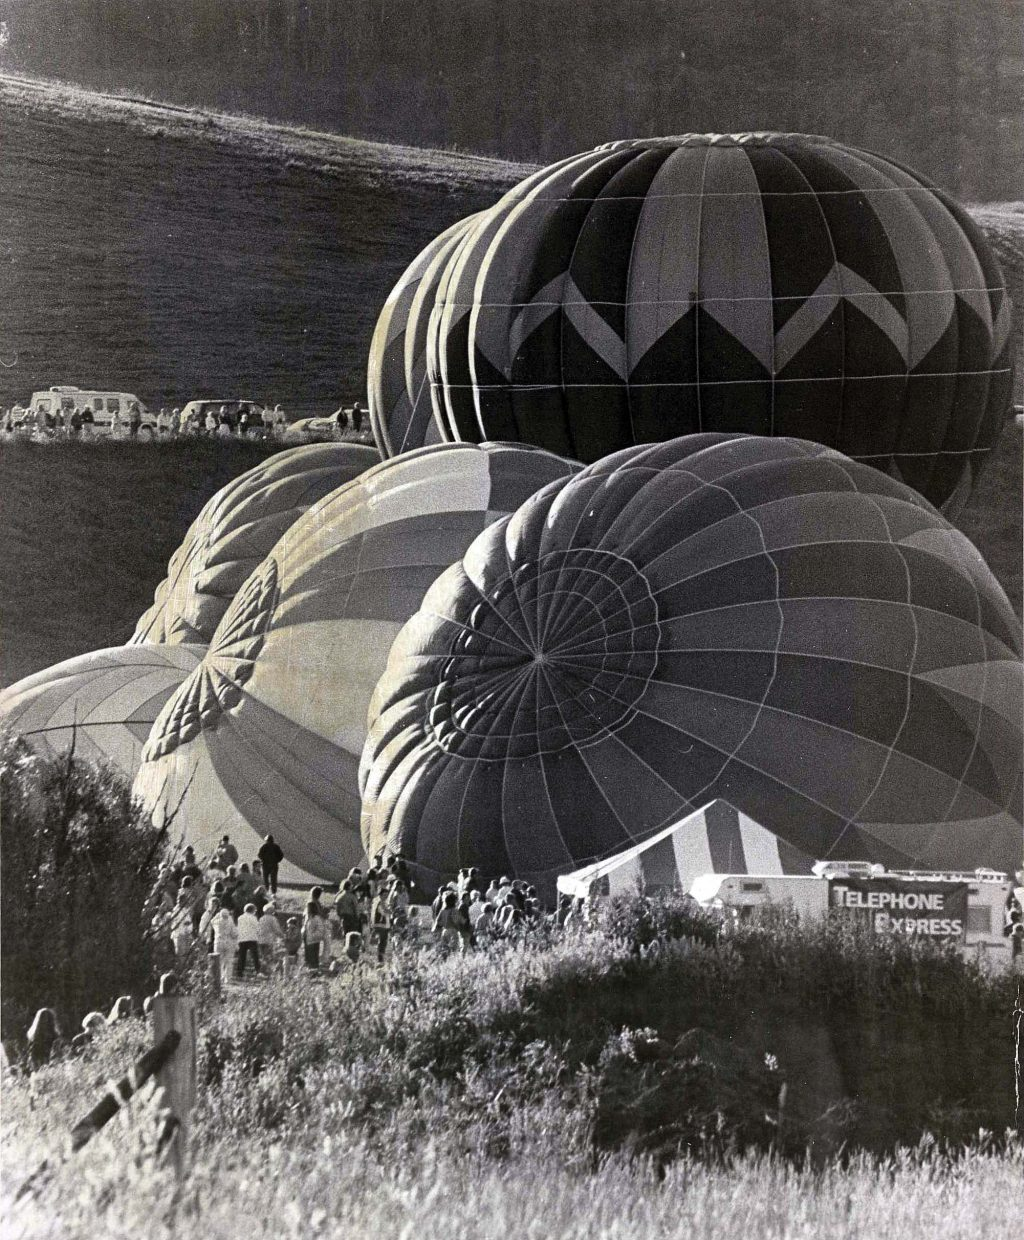 Balloons prepare to launch during the annual Hot Air Balloon Rodeo in Steamboat Springs. This photograph was taken by former Steamboat Today photographer Tyler Arroyo in the early 1990s.